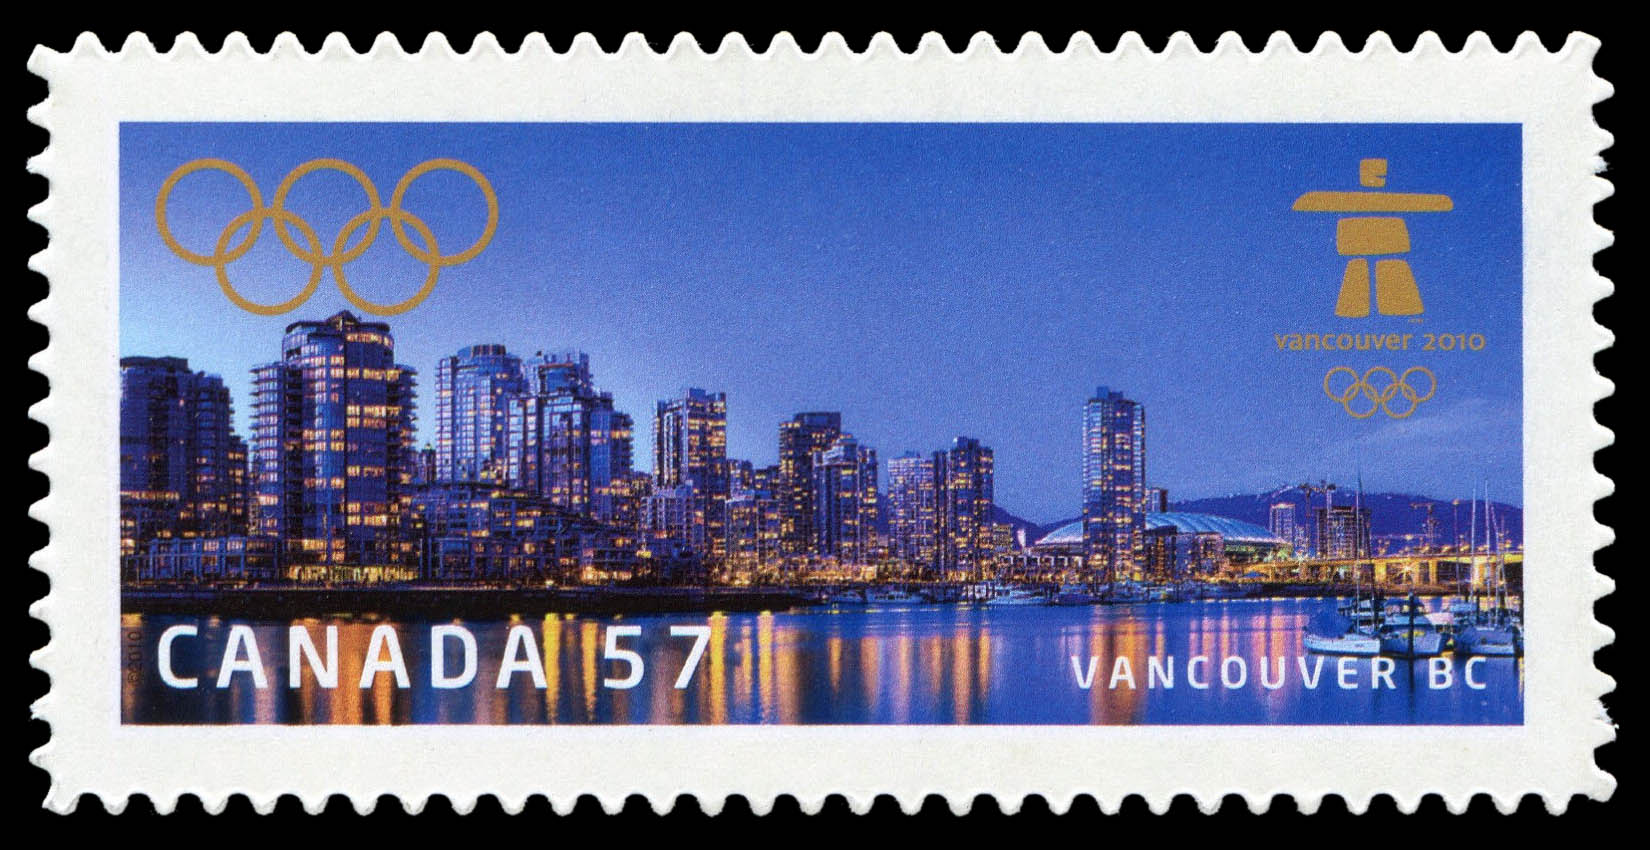 Vancouver BC Canada Postage Stamp   Vancouver 2010 Olympic Winter Games